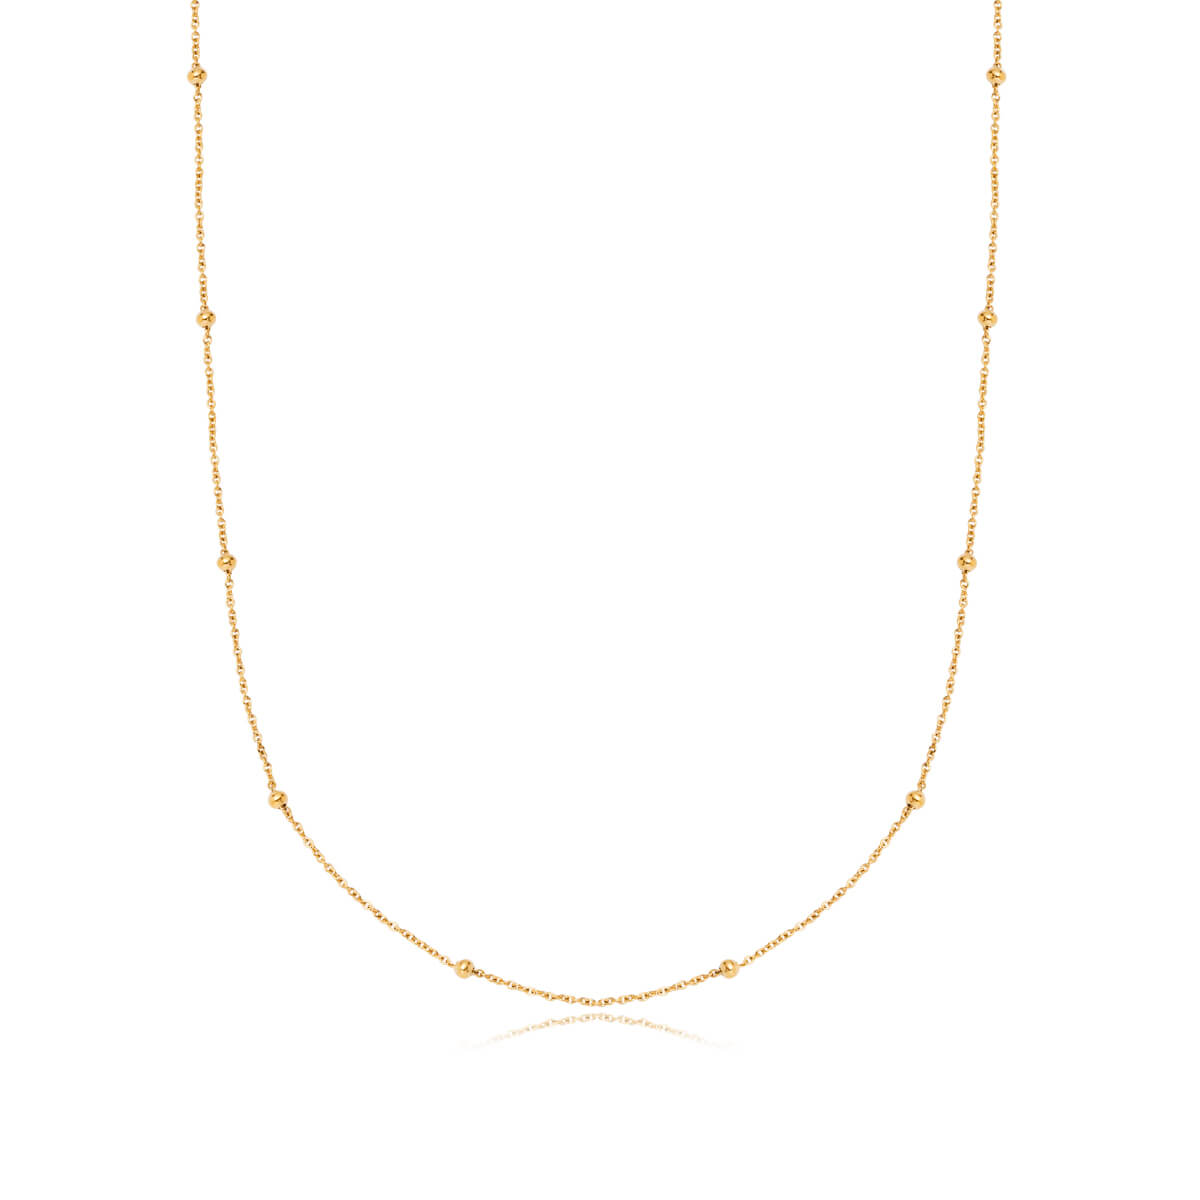 Selected Sphere Chain Necklace 20 in (Gold)